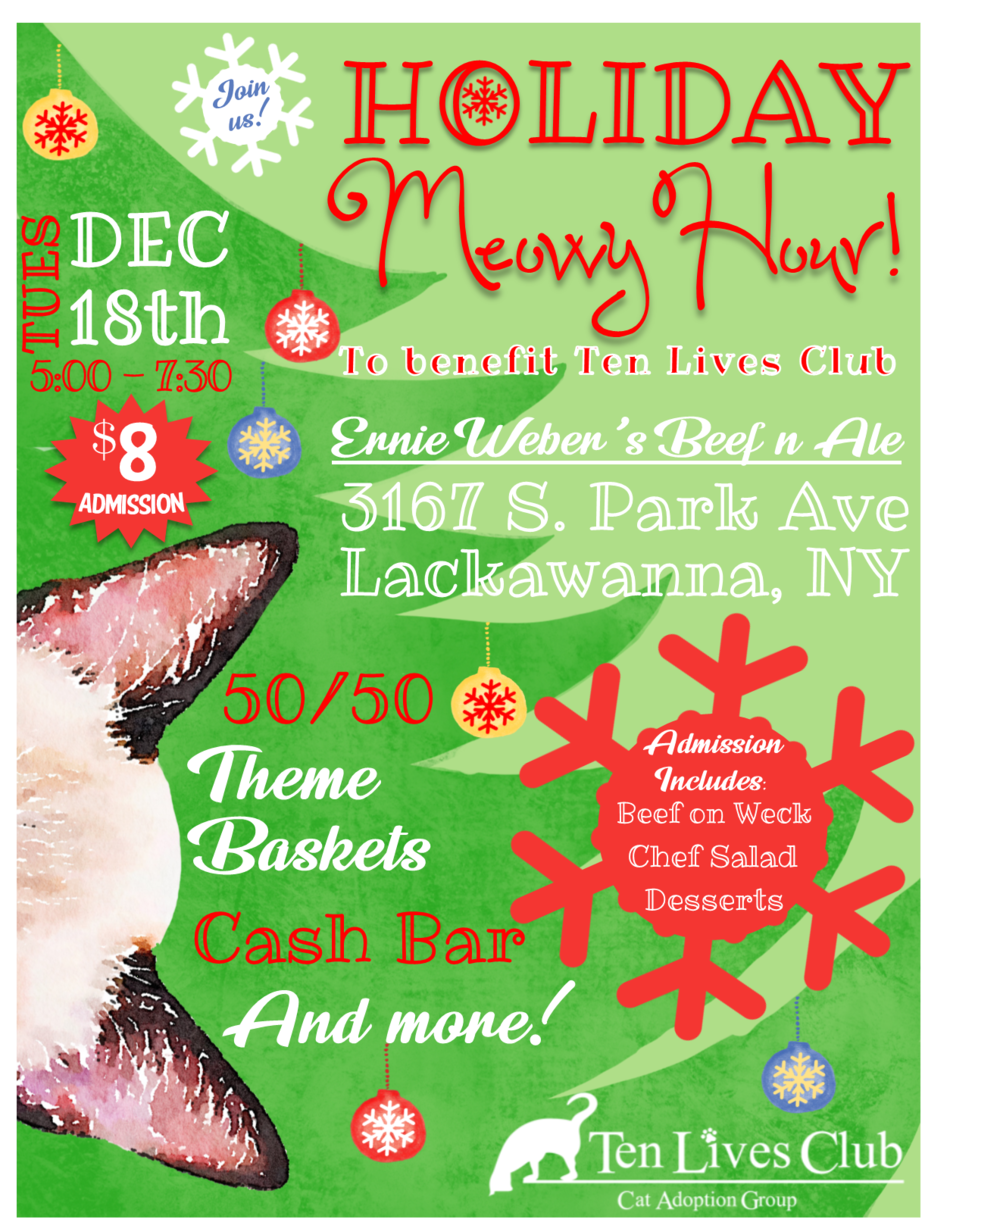 Holiday Meowy Hour Flyer.png